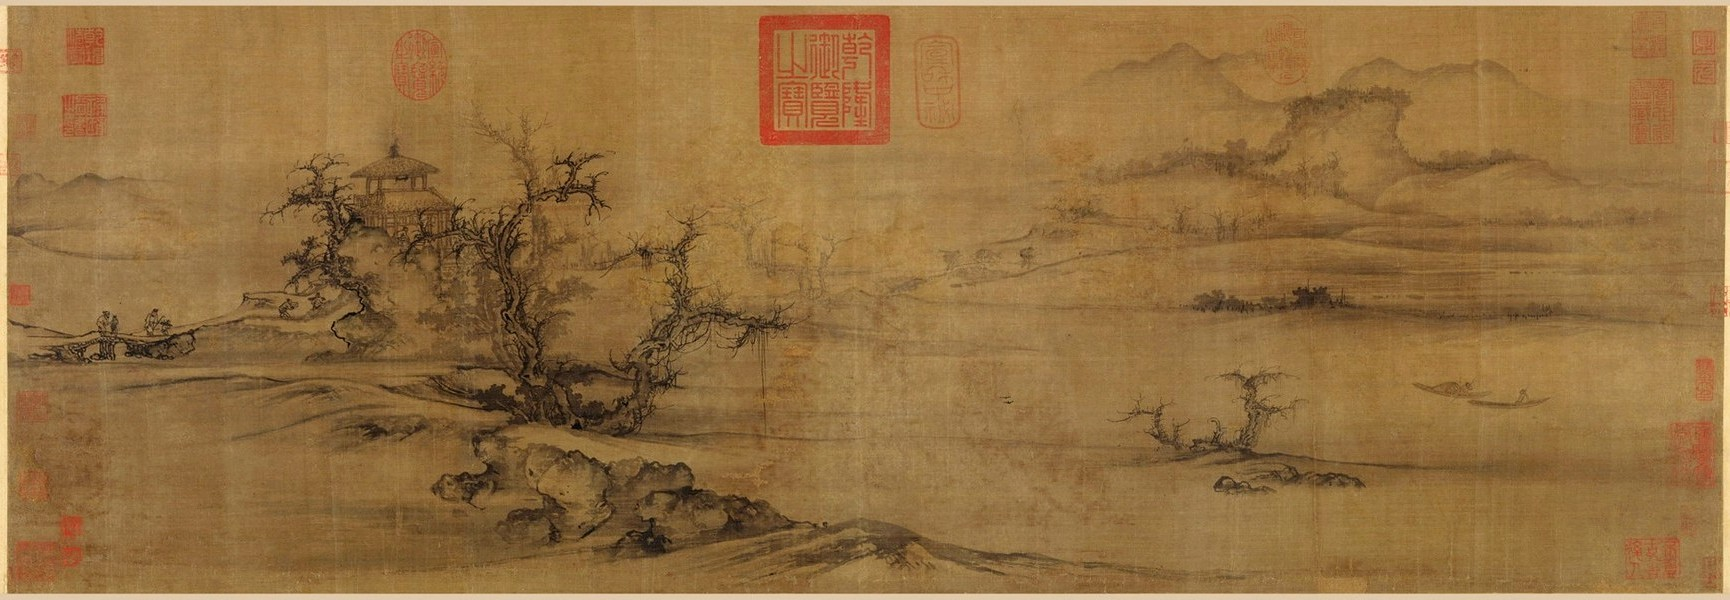 Guo_Xi._Old_Trees,_Level_Distance,_ca._1080..jpg